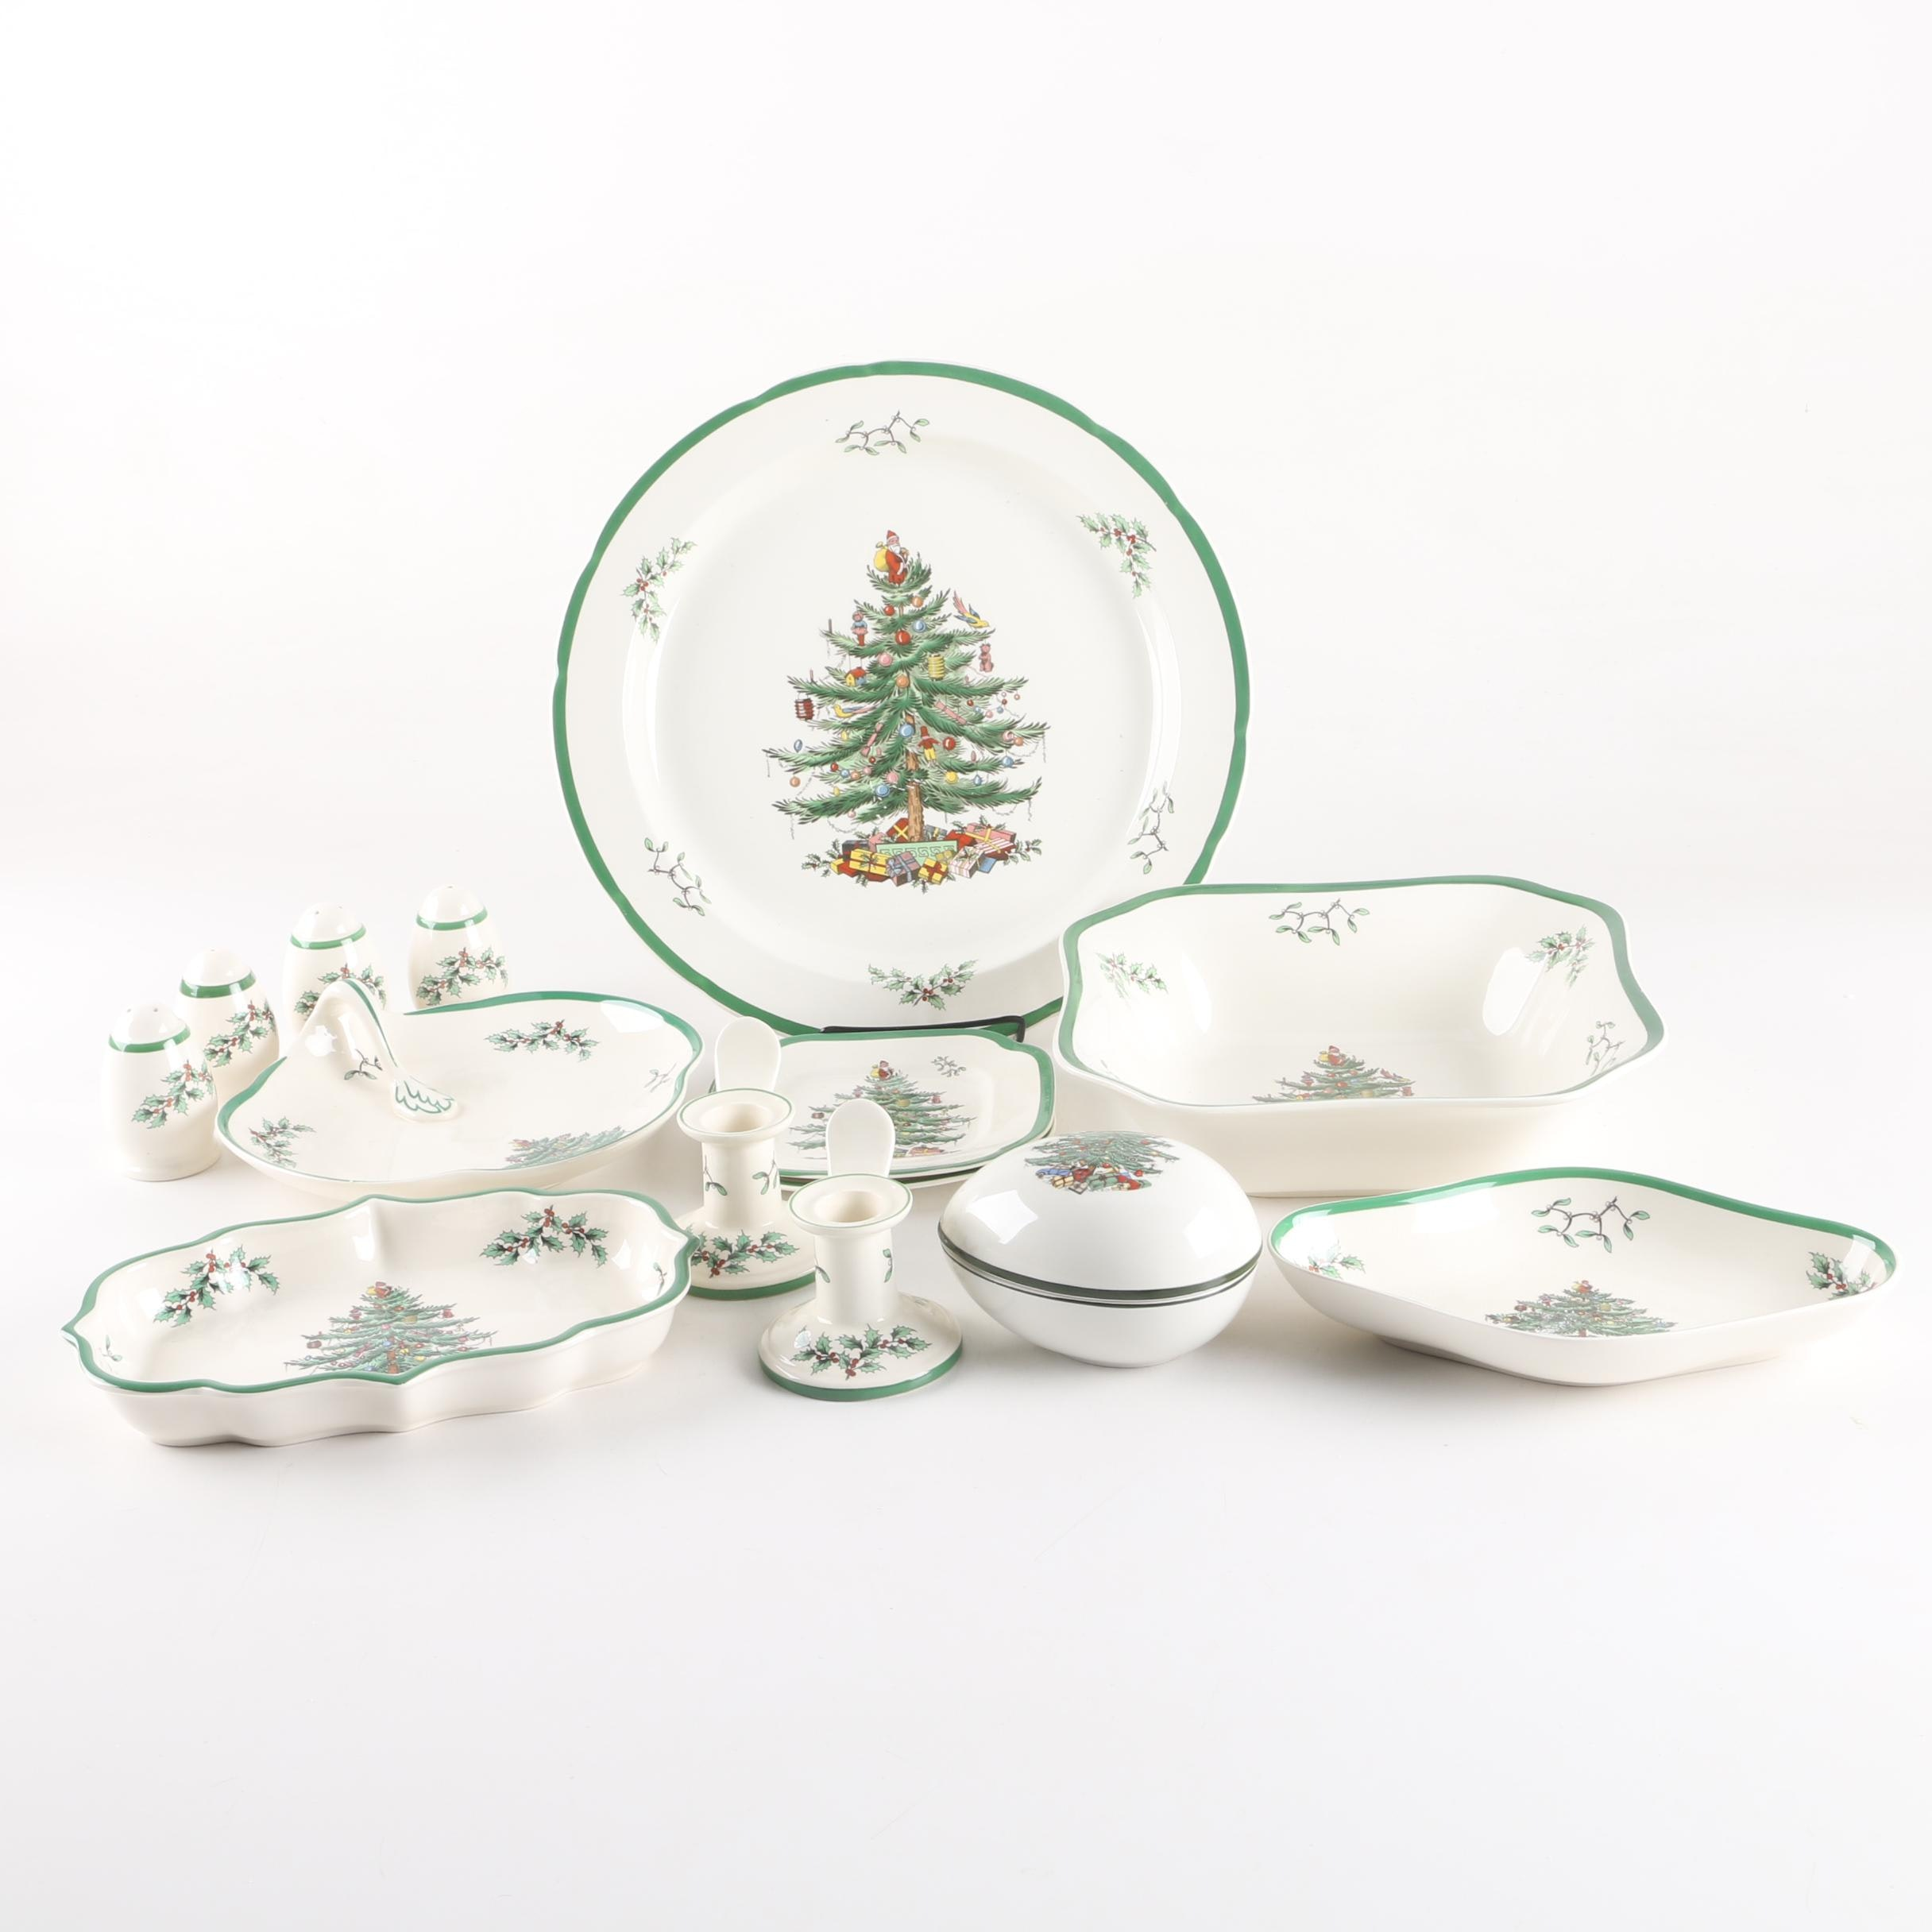 Spode 'Christmas Tree' Serveware